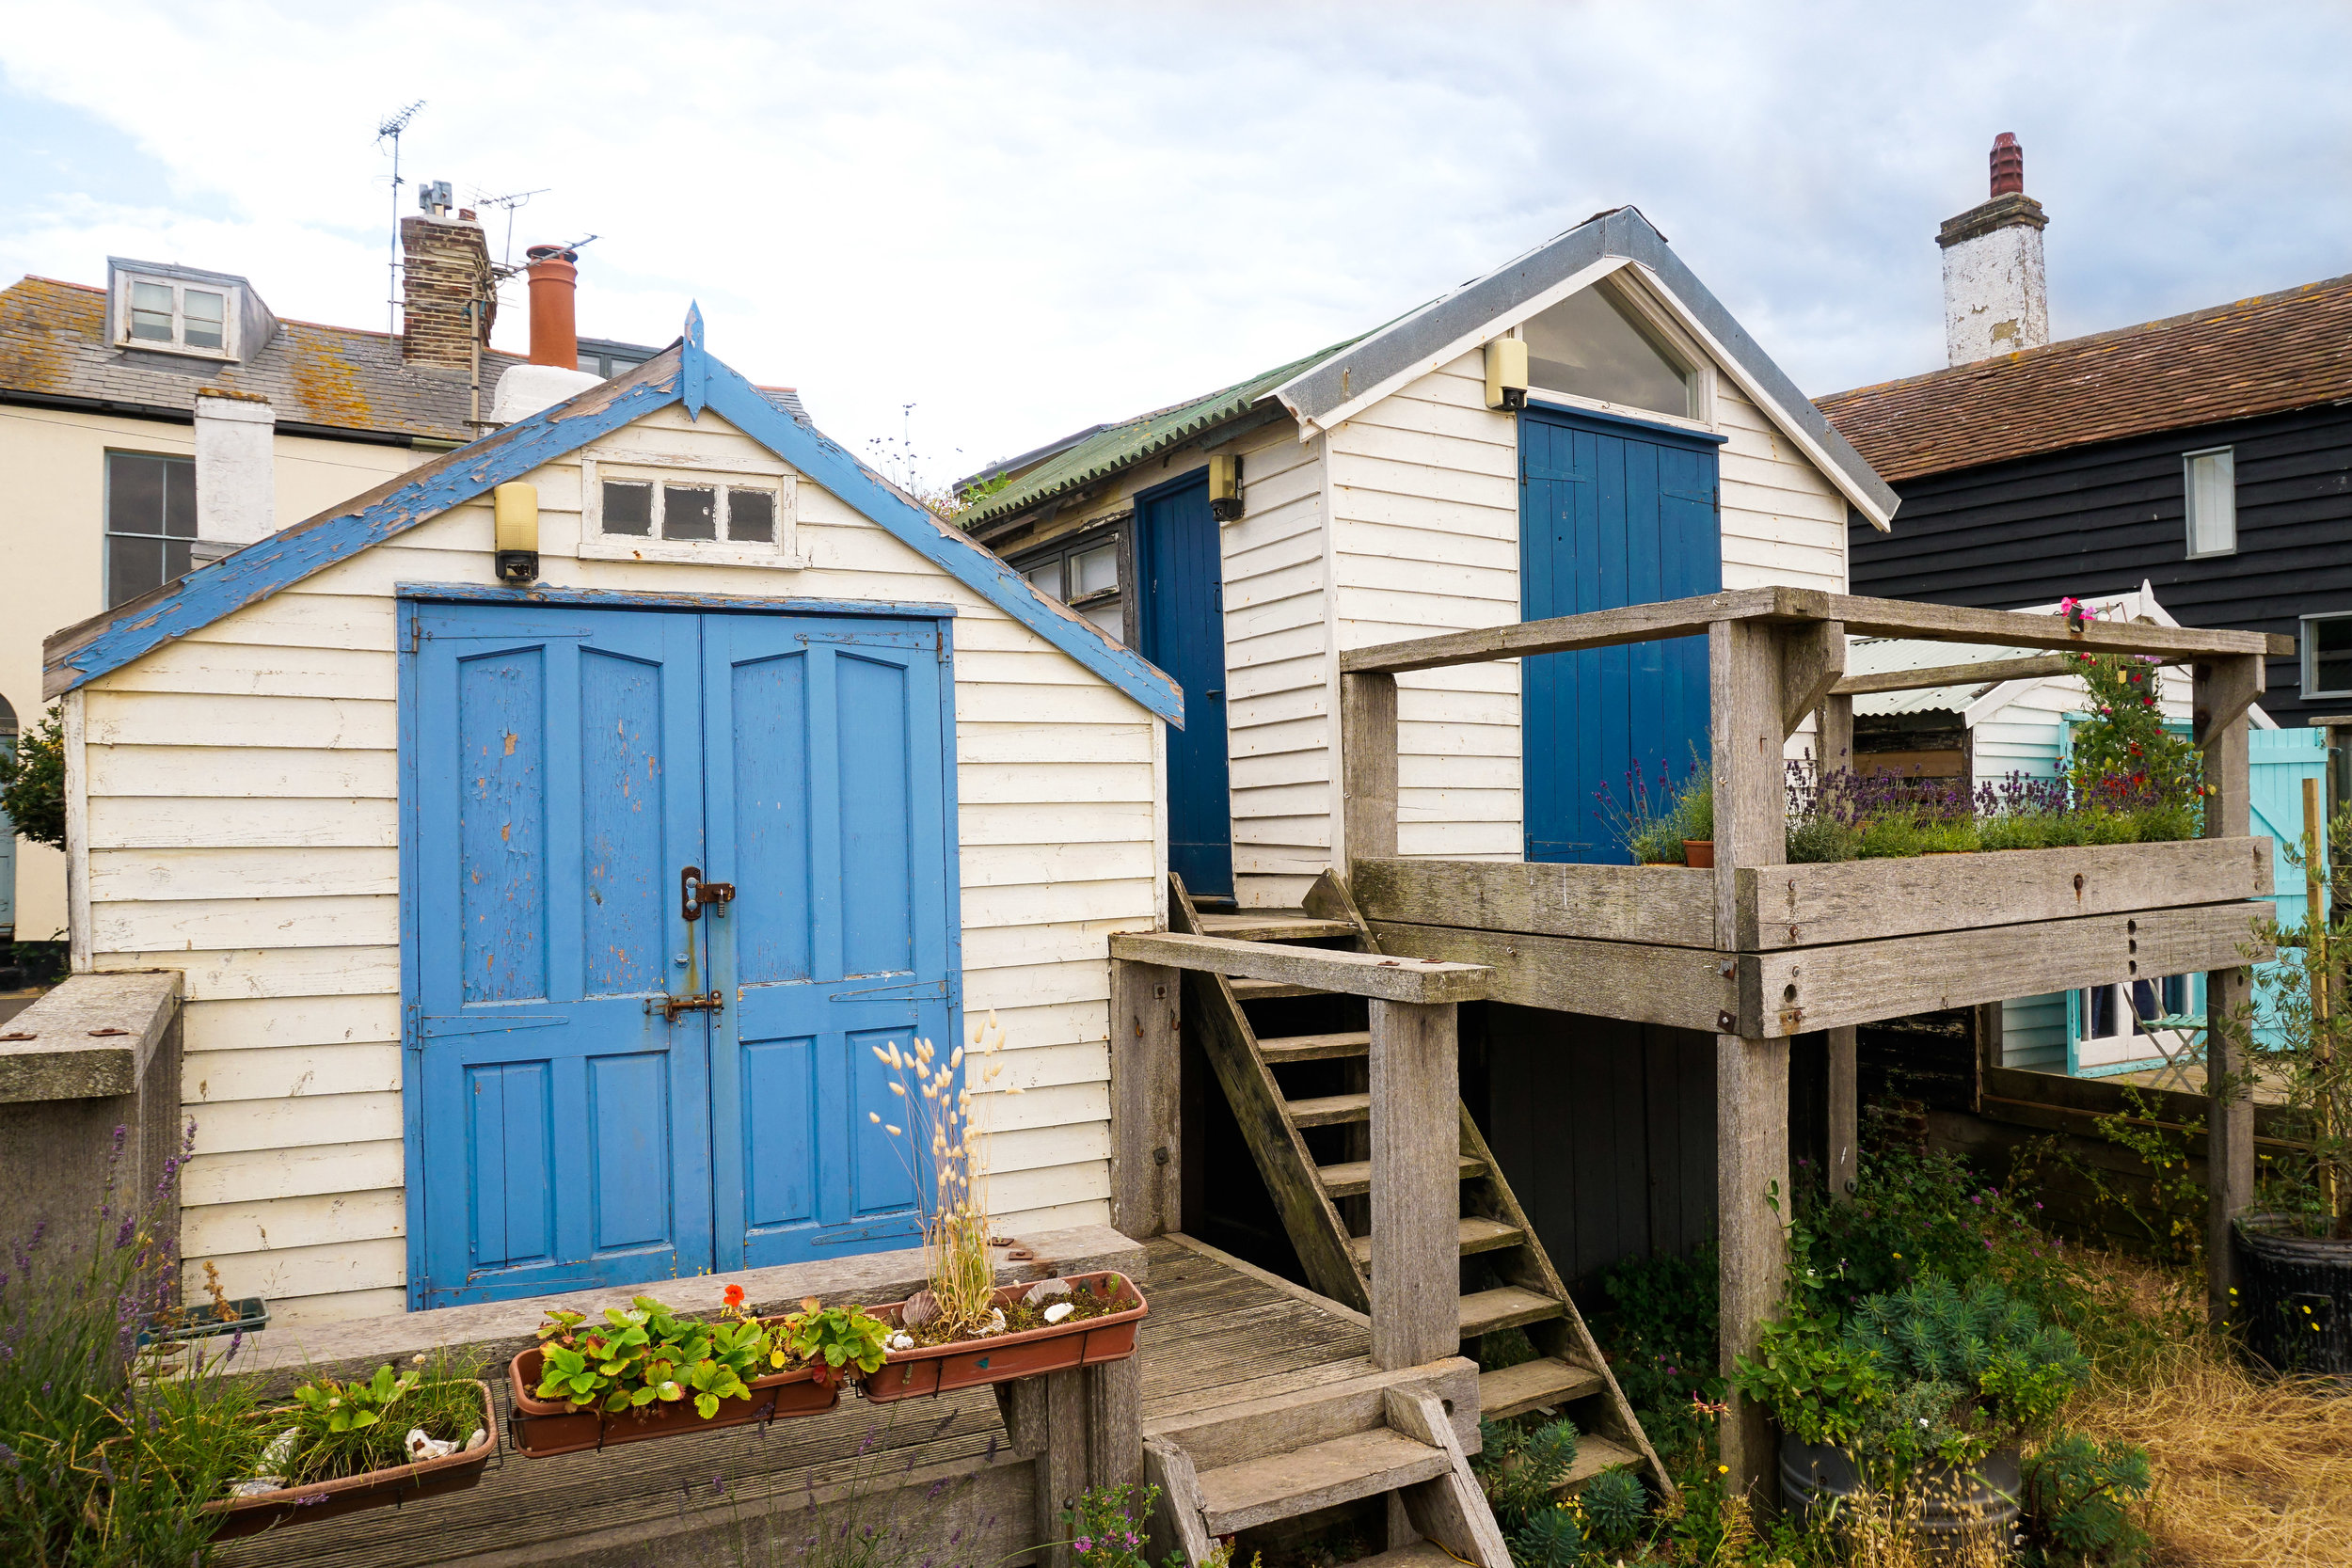 curio.trips.england.kent.whitstable.beach.huts.landscape.jpg